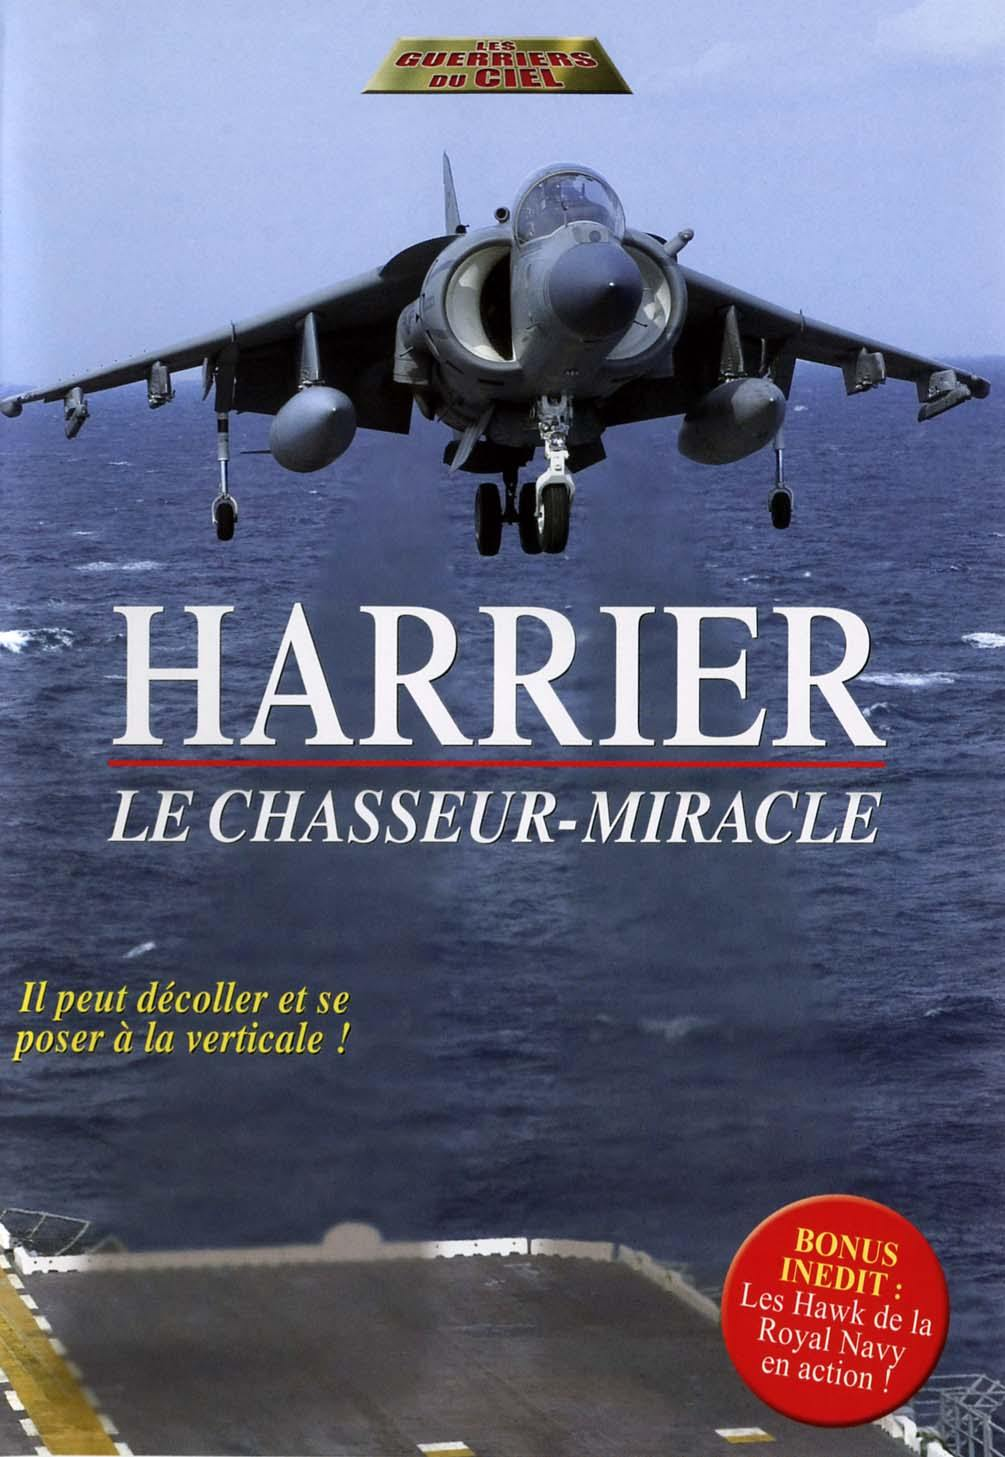 Harrier - dvd  le chasseur miracle